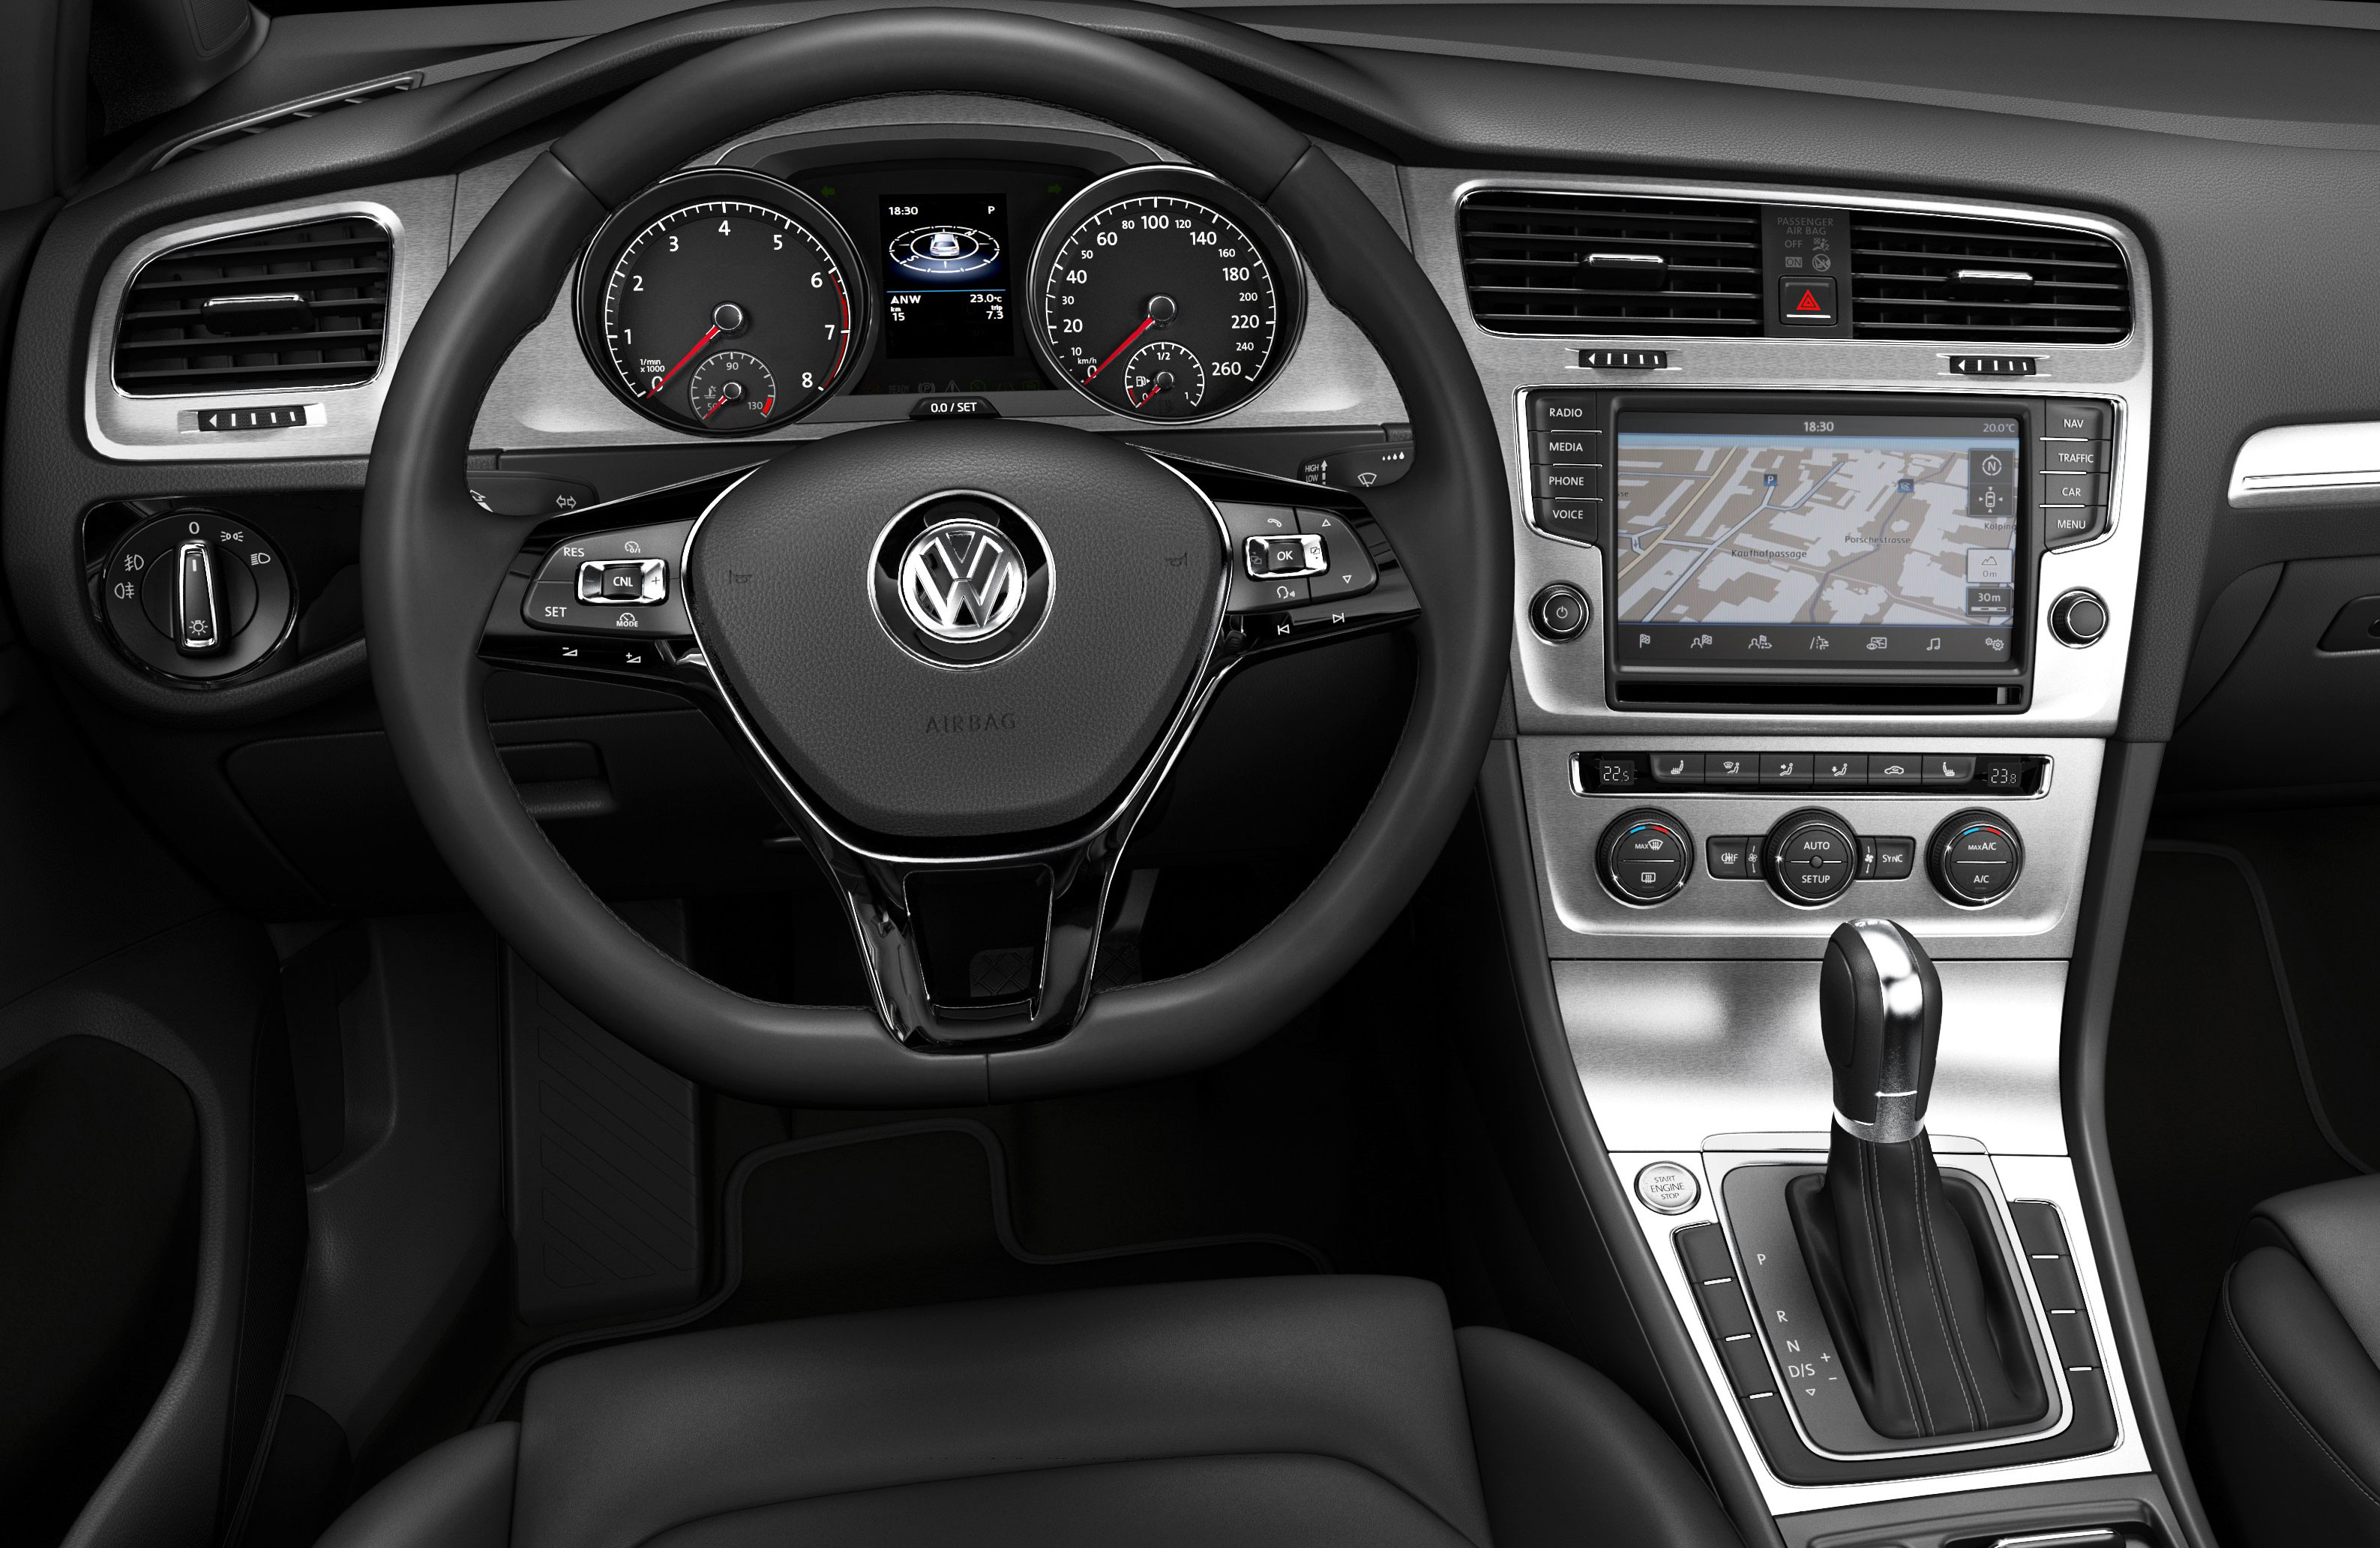 Golf 7 moreover Wallpaper 68 besides Volkswagen likewise 1993 Volkswagen Golf Gti together with Golf Dash. on 2012 volkswagen golf